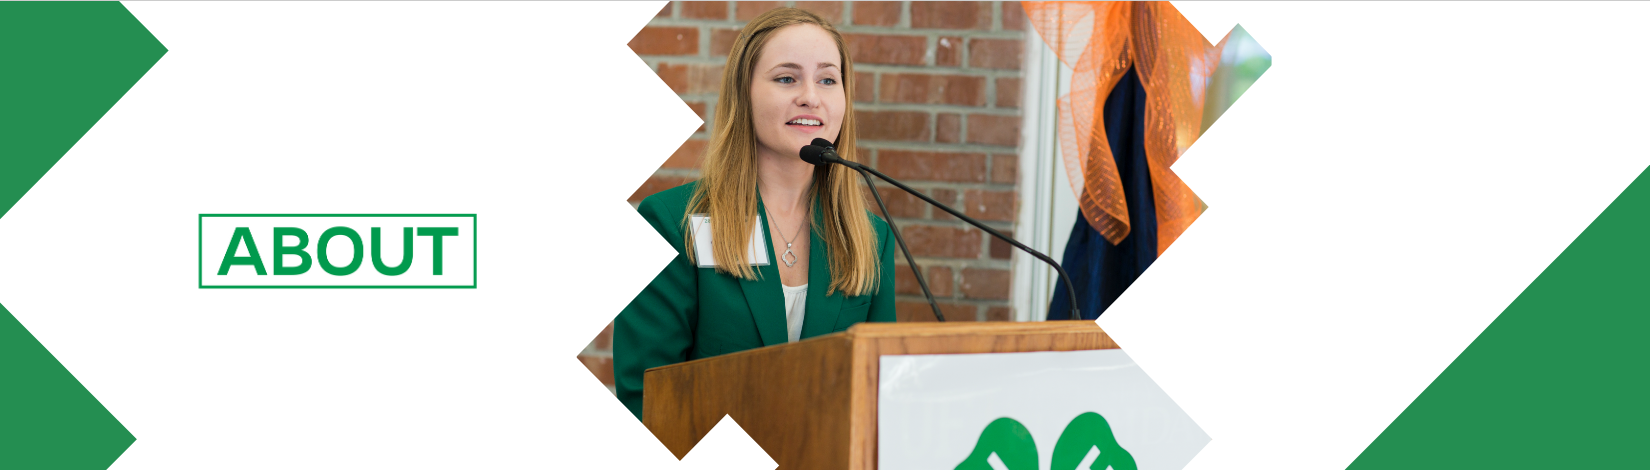 Girl speaking a 4-H meeting